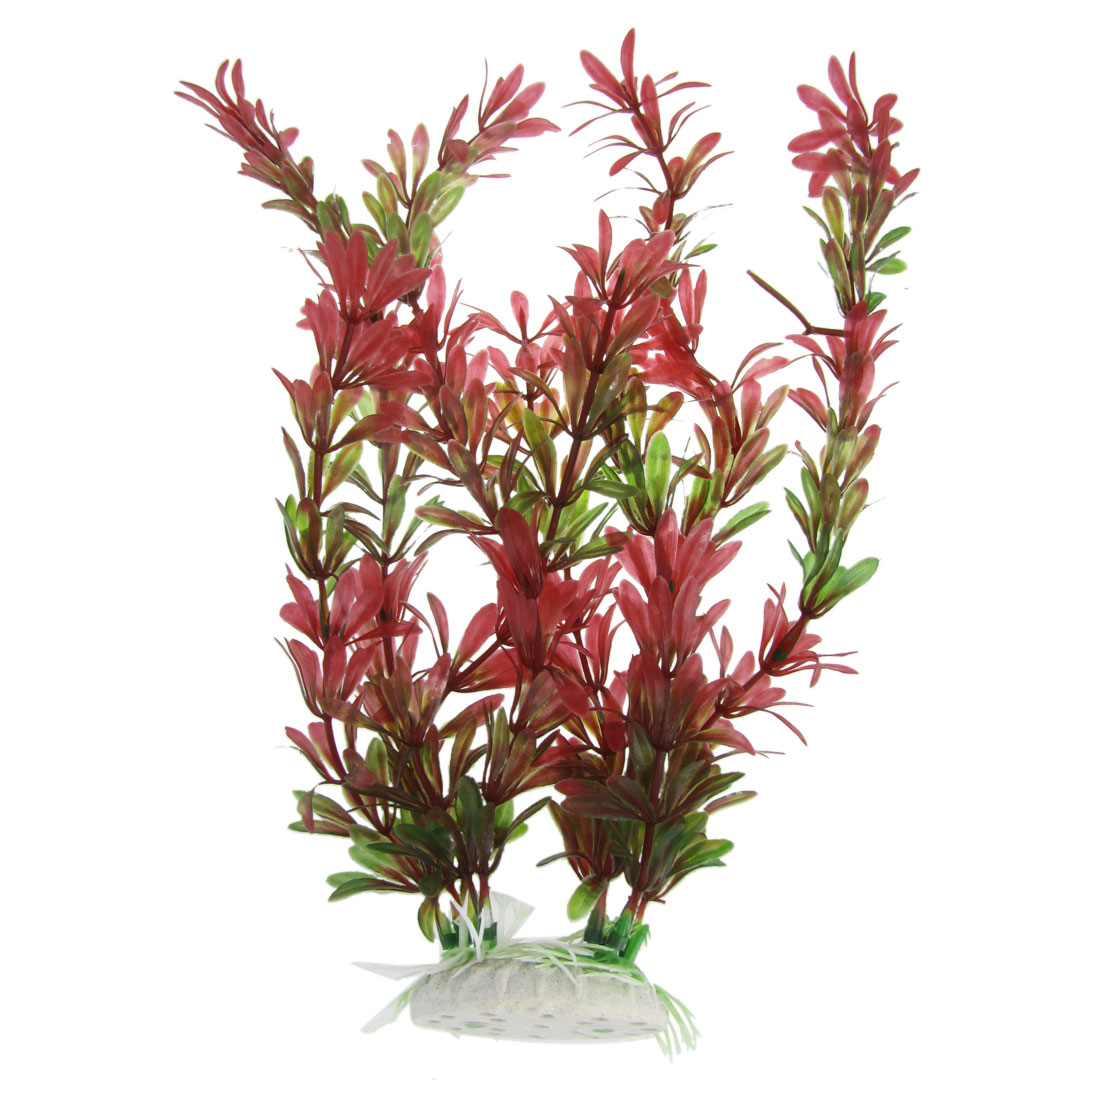 "Fish Tank Decor Ceramic Base 10.6"" Height Grass Plant Red Green"